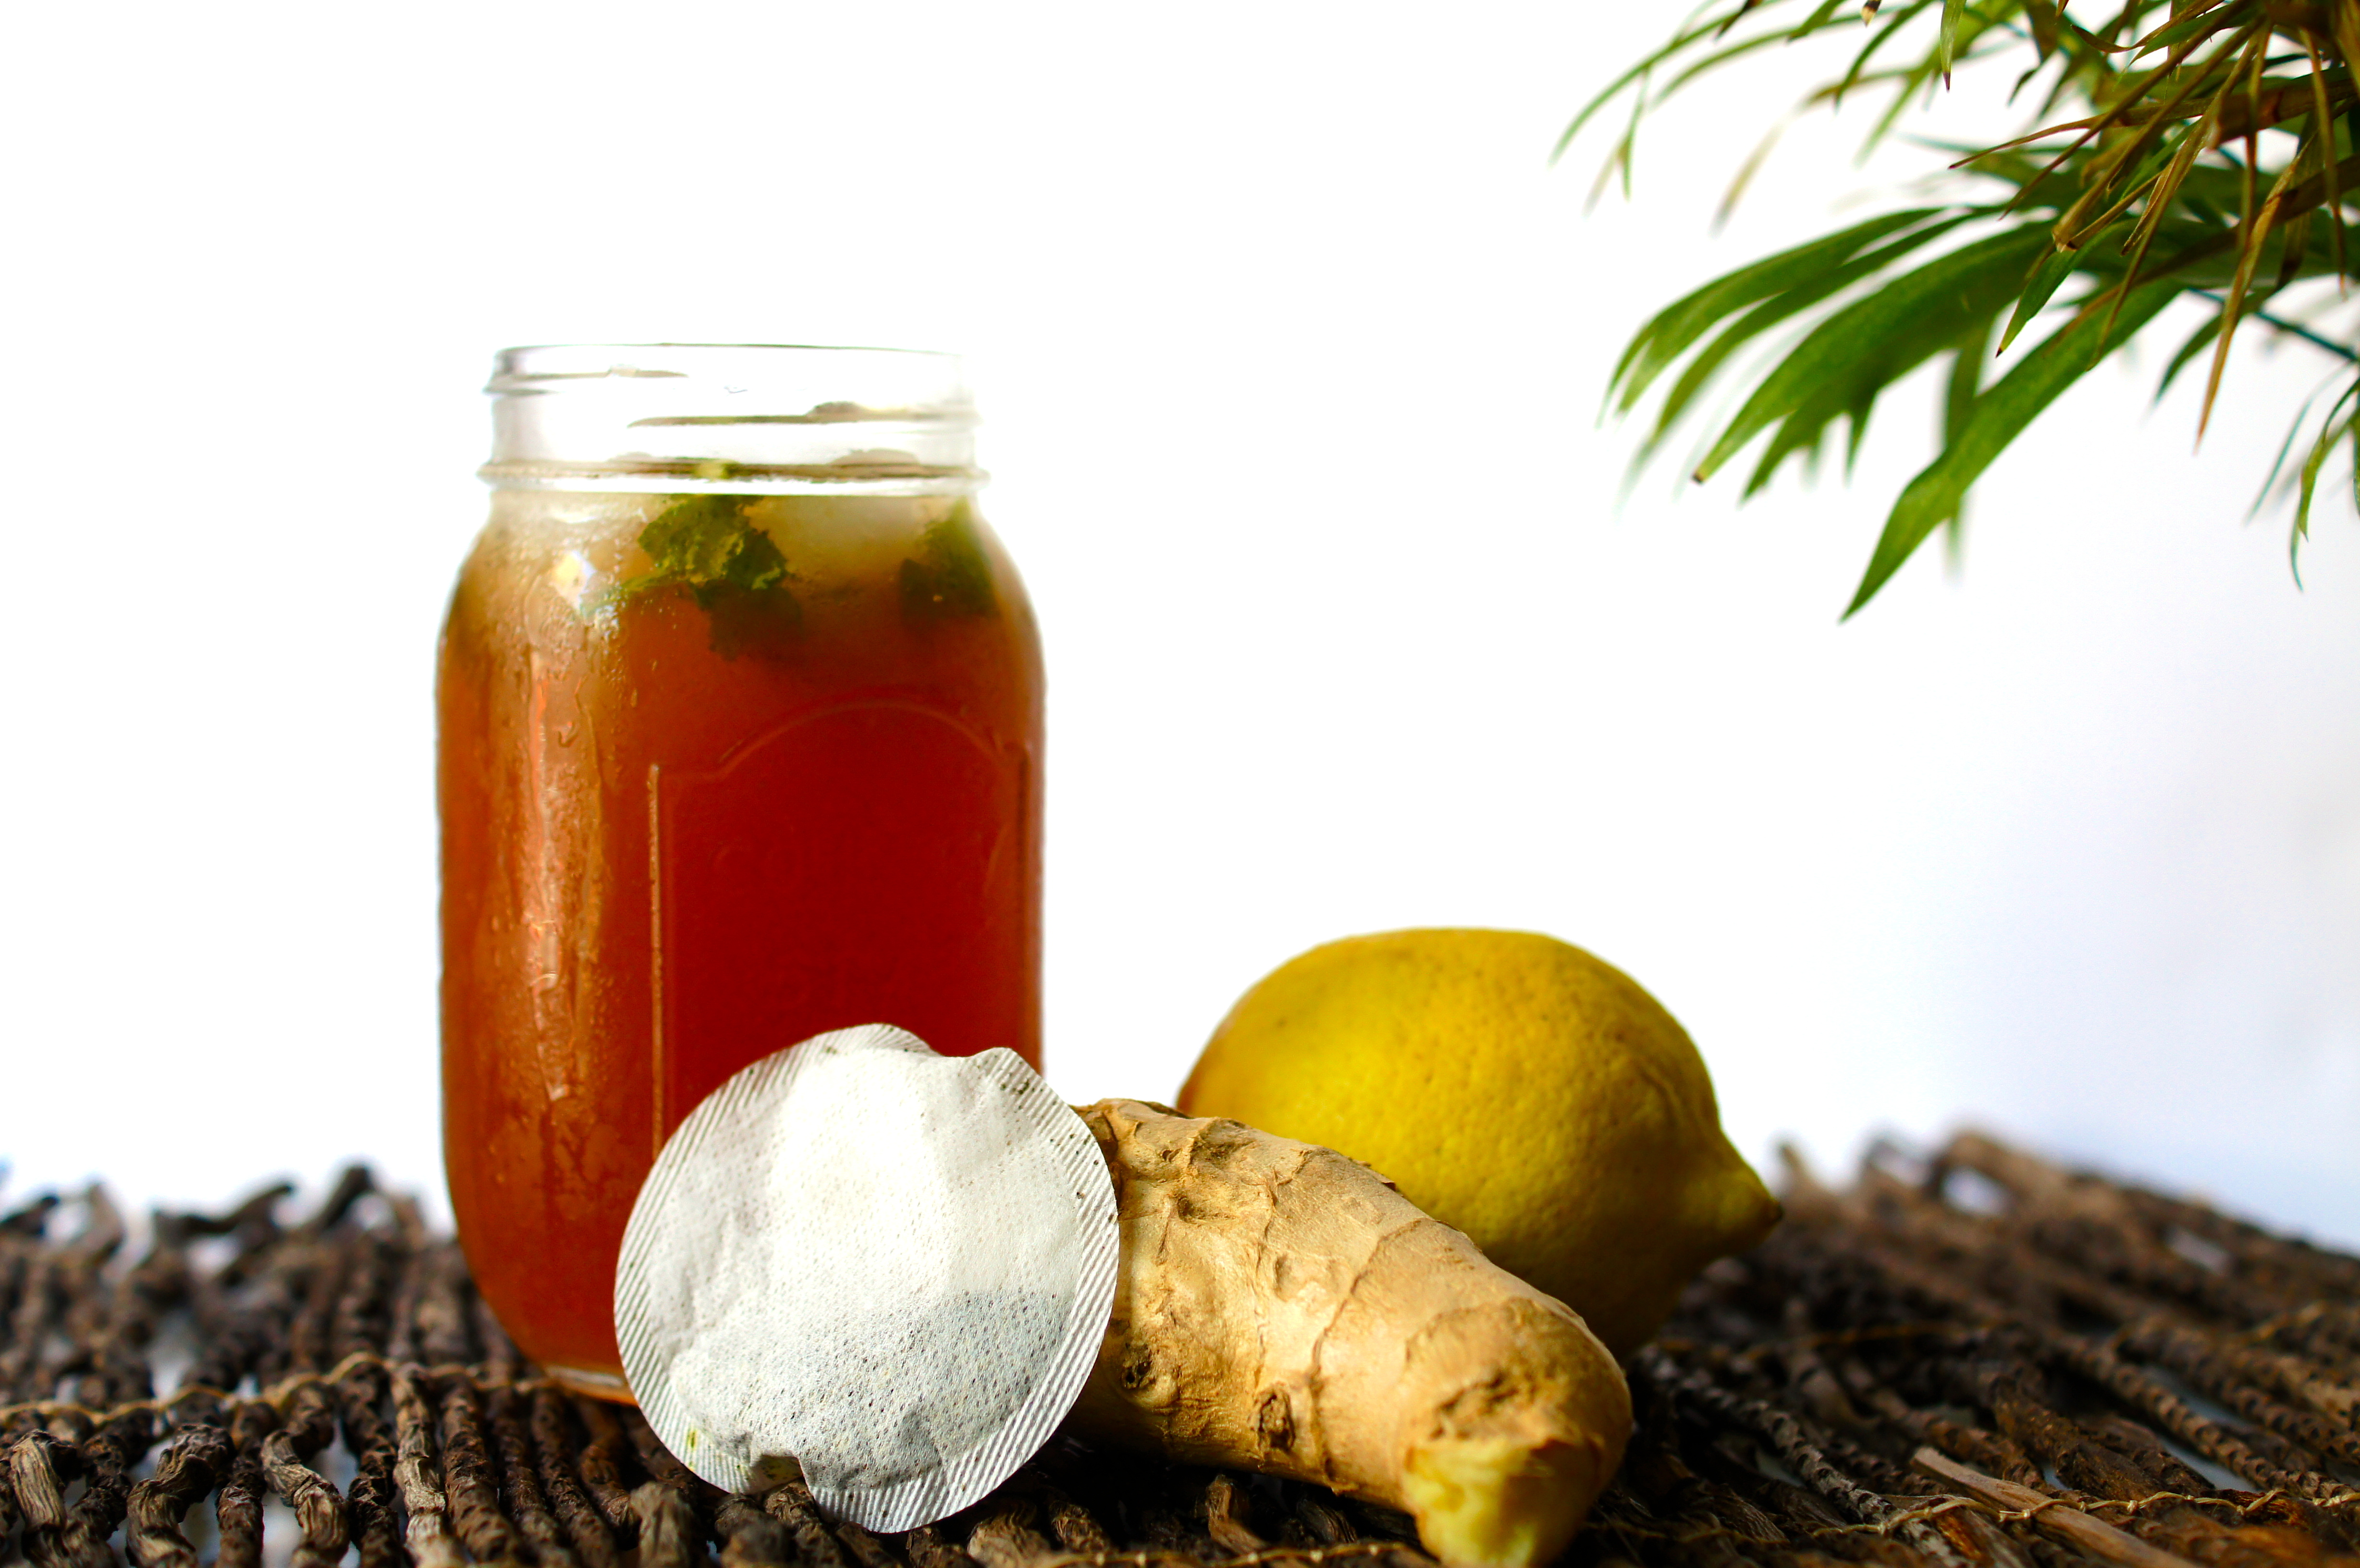 of ice, mix the tea, ginger juice, lemon juice and honey. Add the mint ...